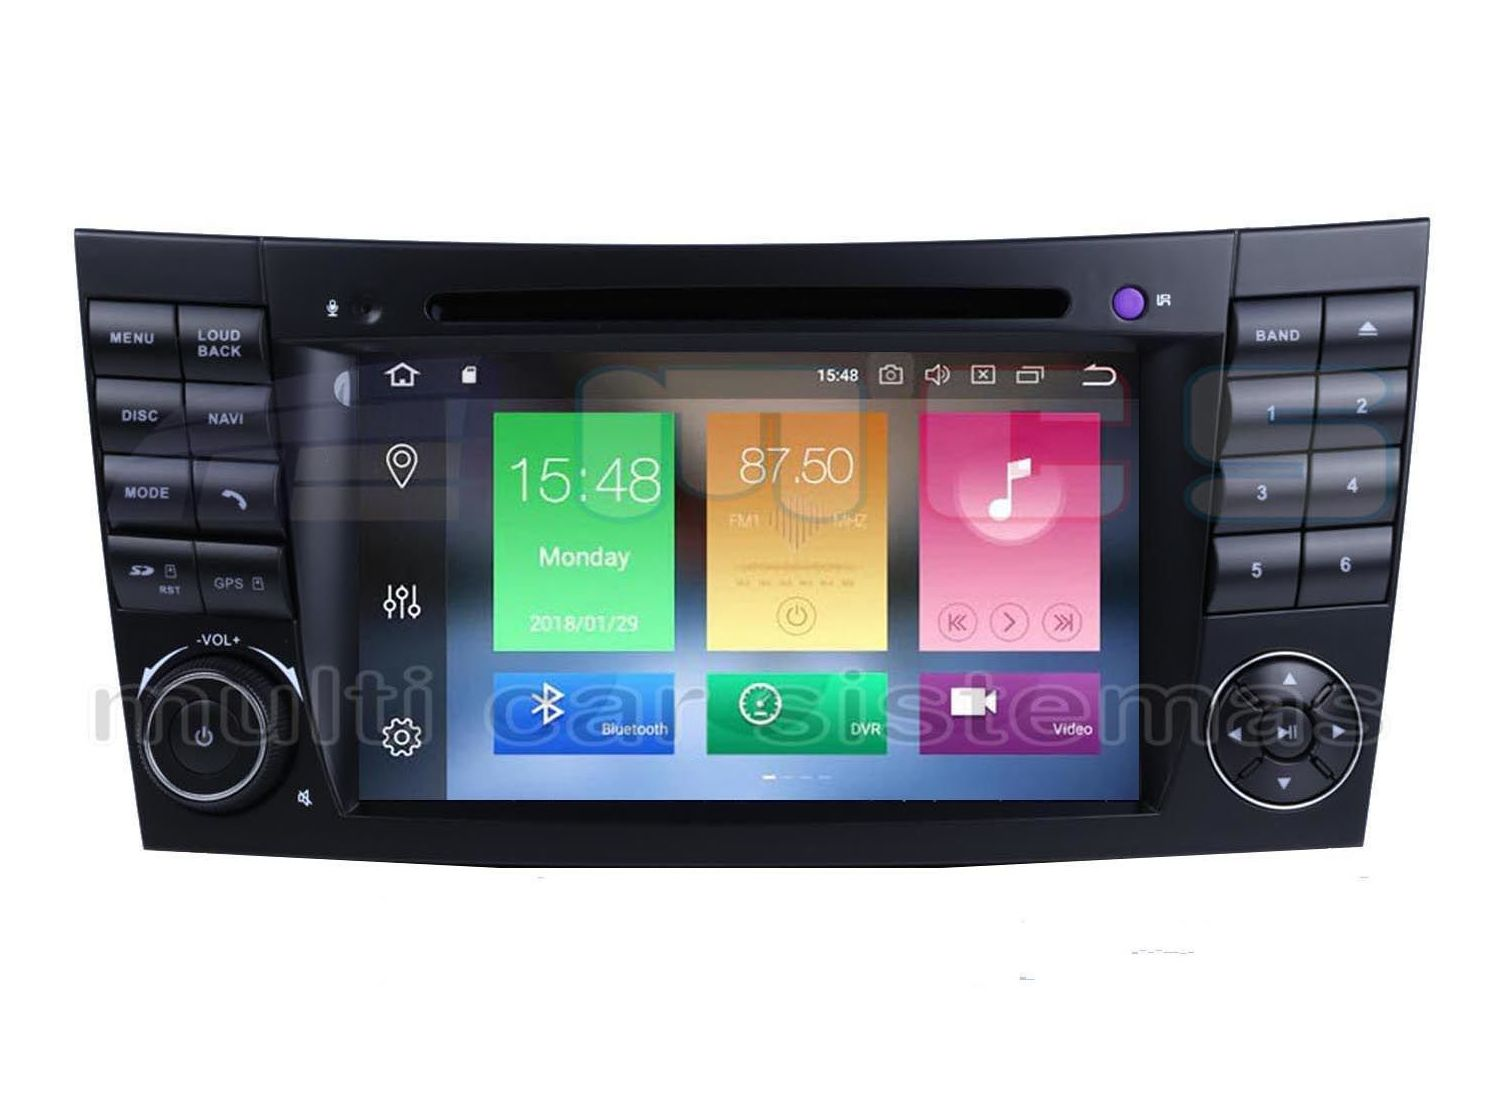 "RADIO GPS PANTALLA TACTIL 7"" ANDROID MERCEDES E W211 CLS C219 WIFI BLUETOOTH USB SD"